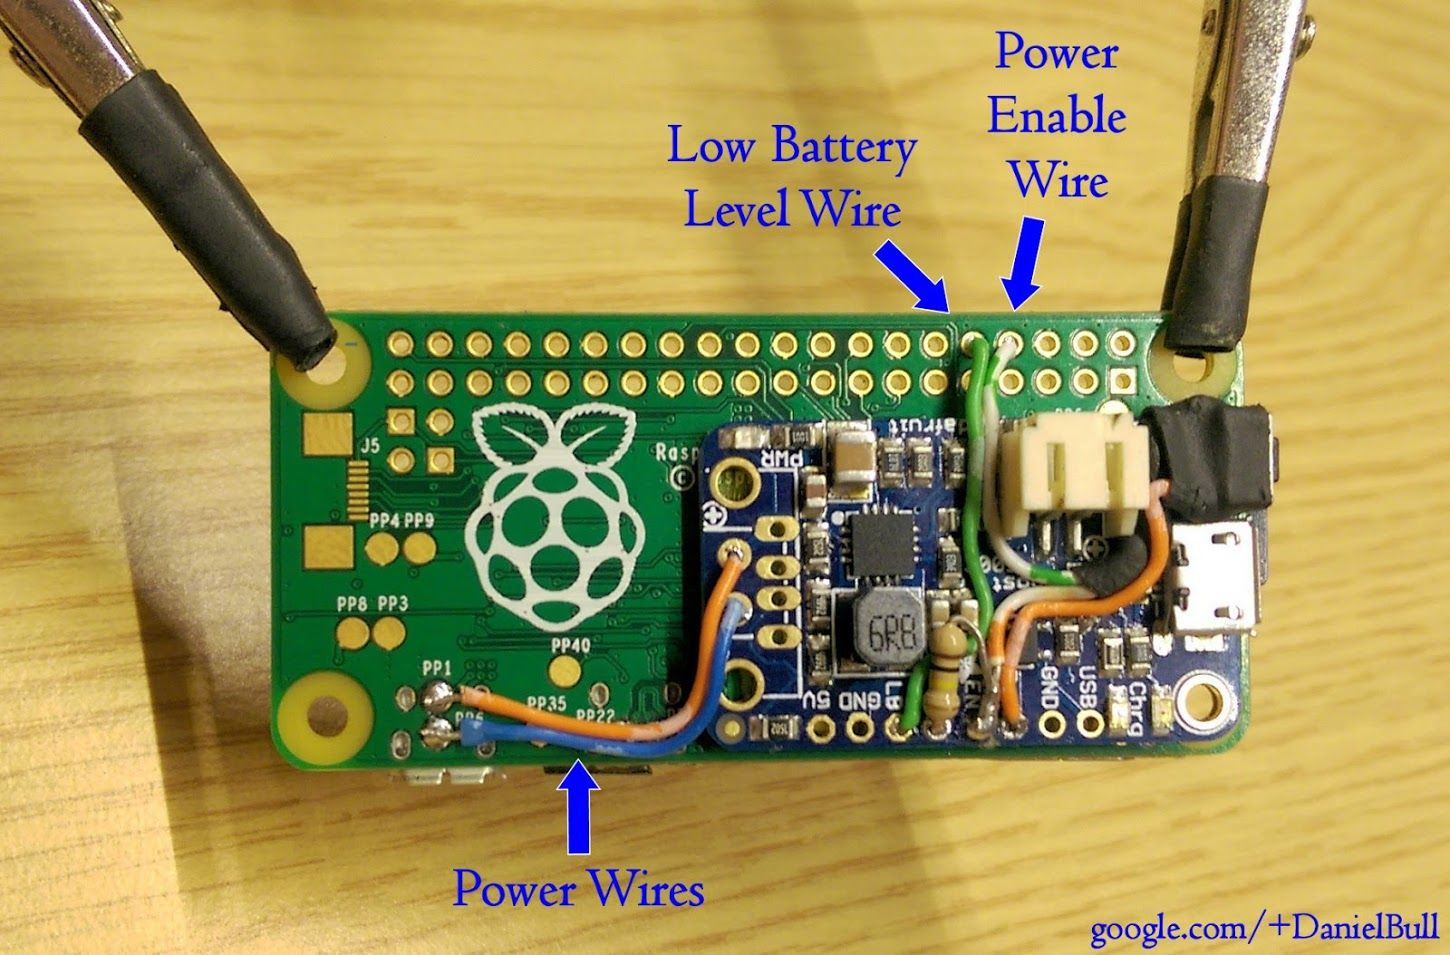 53 Coolest Diy Mason Jar Gifts Other Fun Ideas In A Joy Raspberry Pi Wiring Daniel Bull Has Written Up Some Excellent Instructions For And Soldering An Adafruit Powerboost Lipo Charger Onto